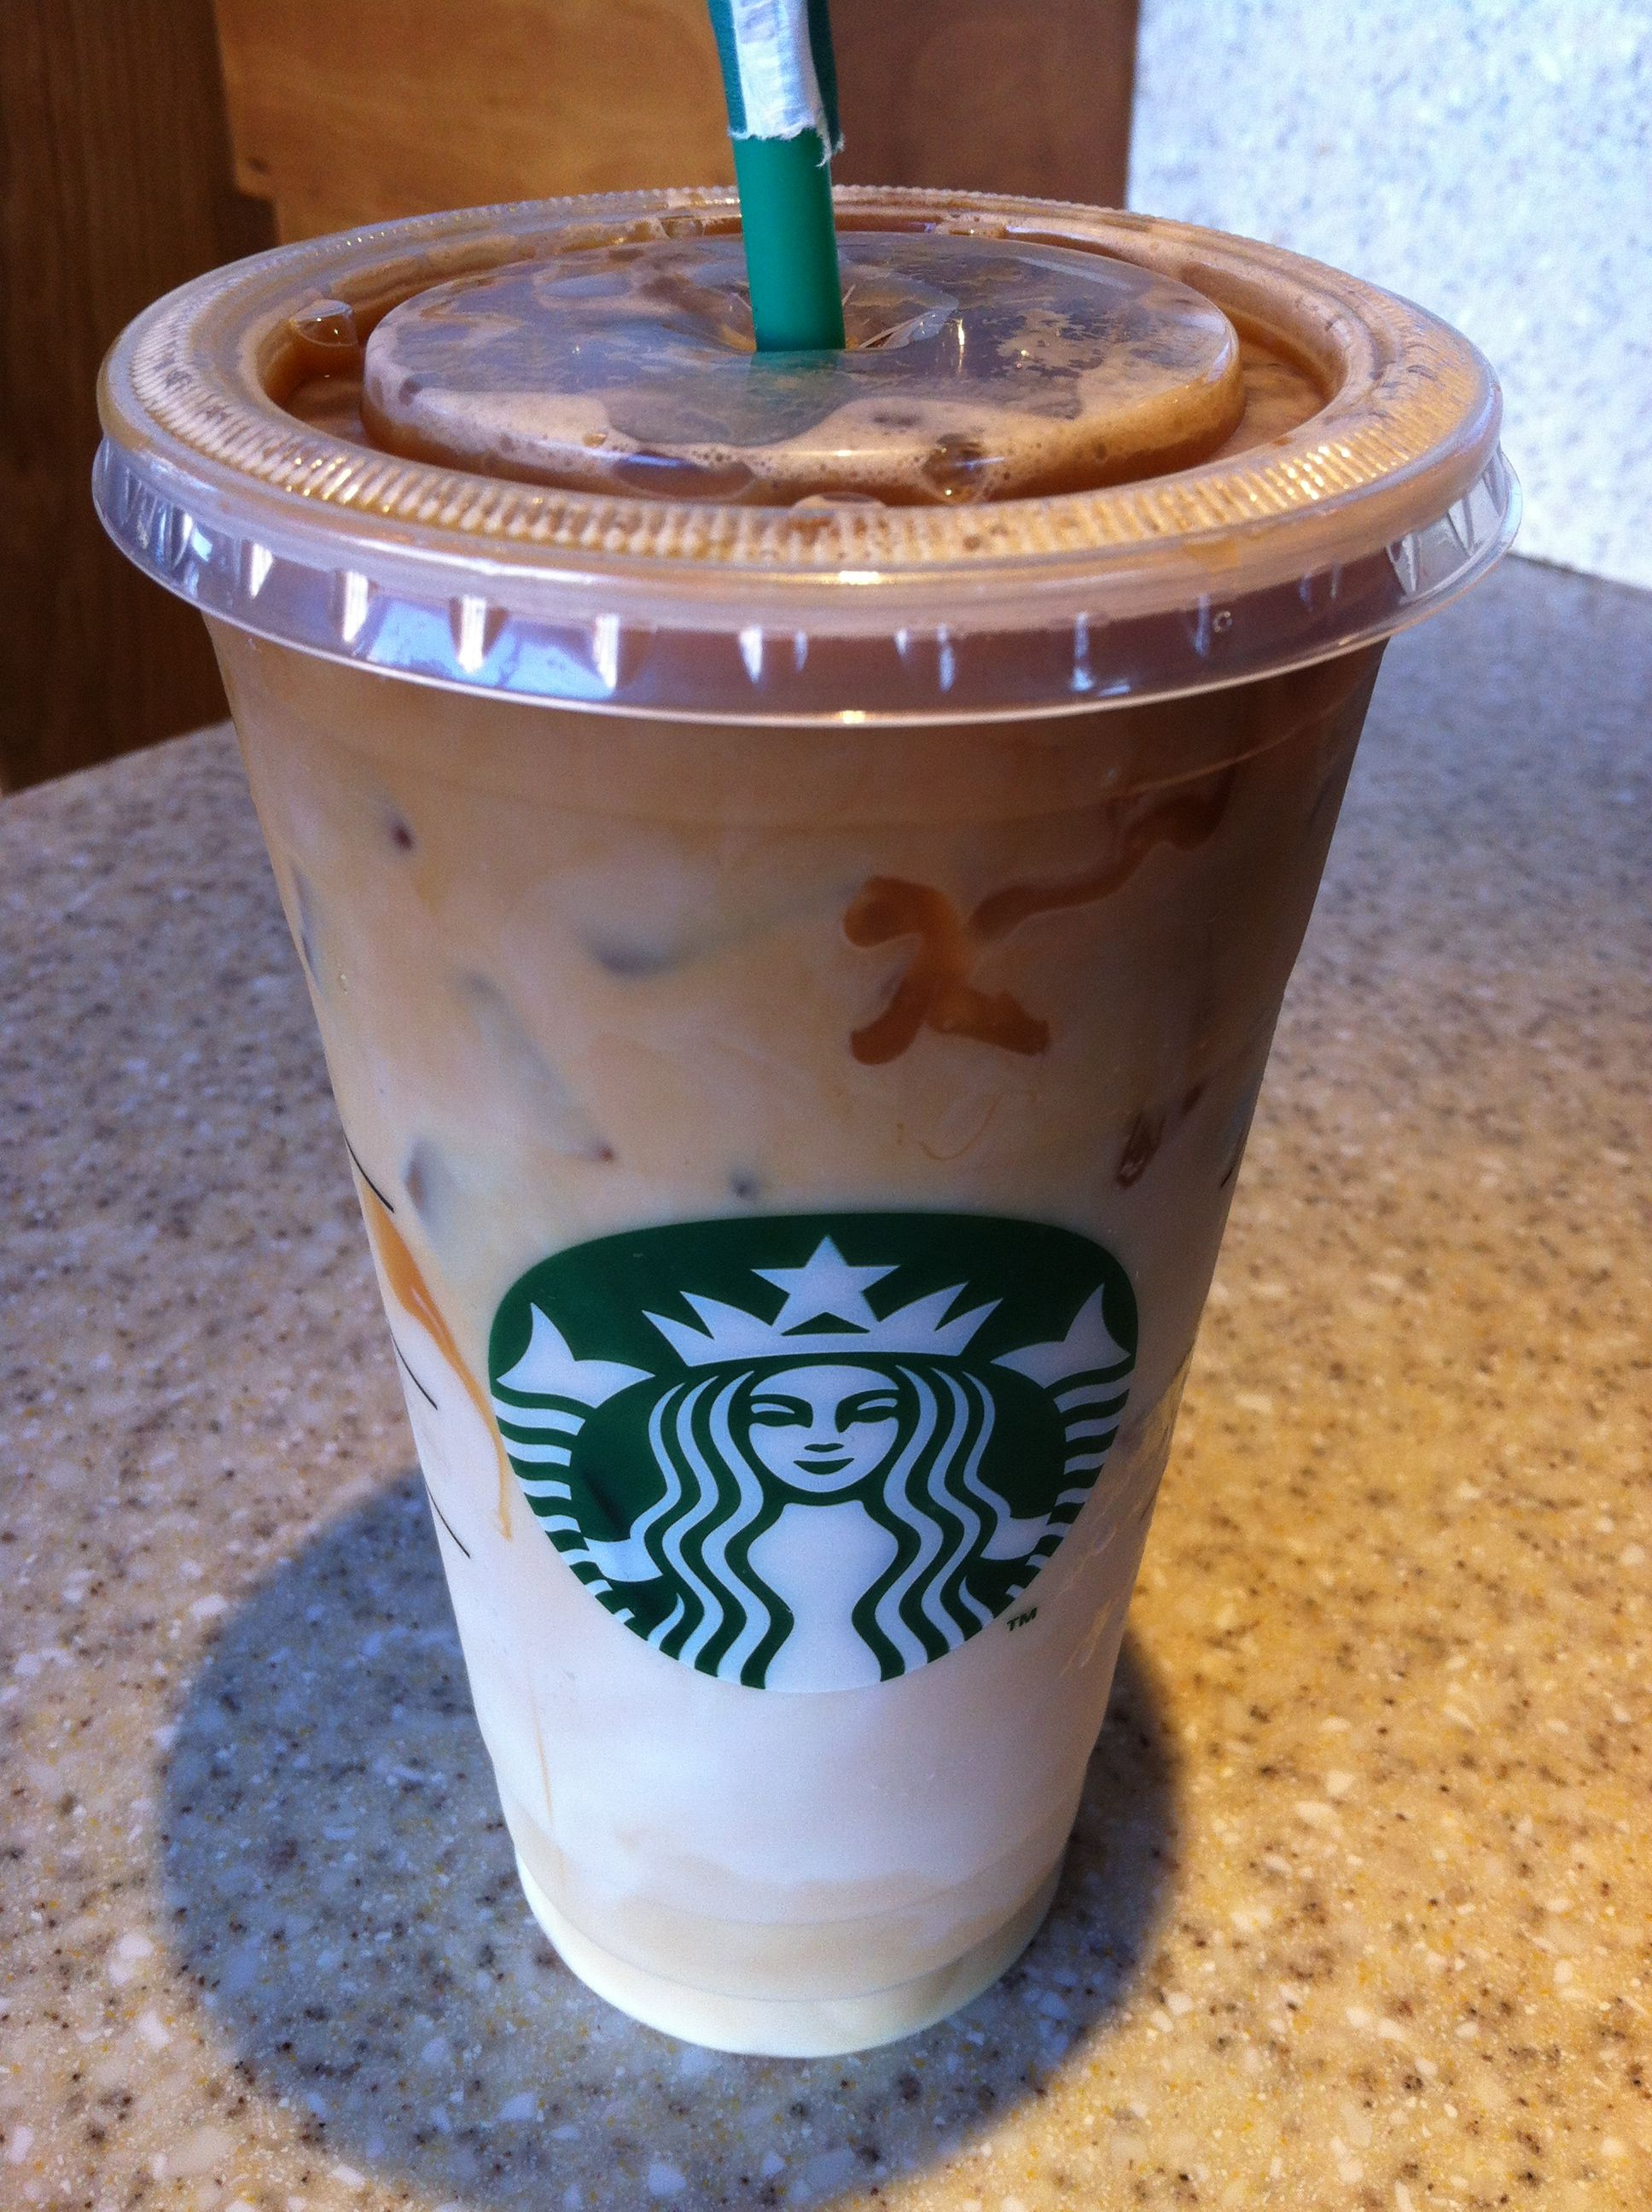 Iced Caramel Macchiato, so delicious! It sounds fancy but